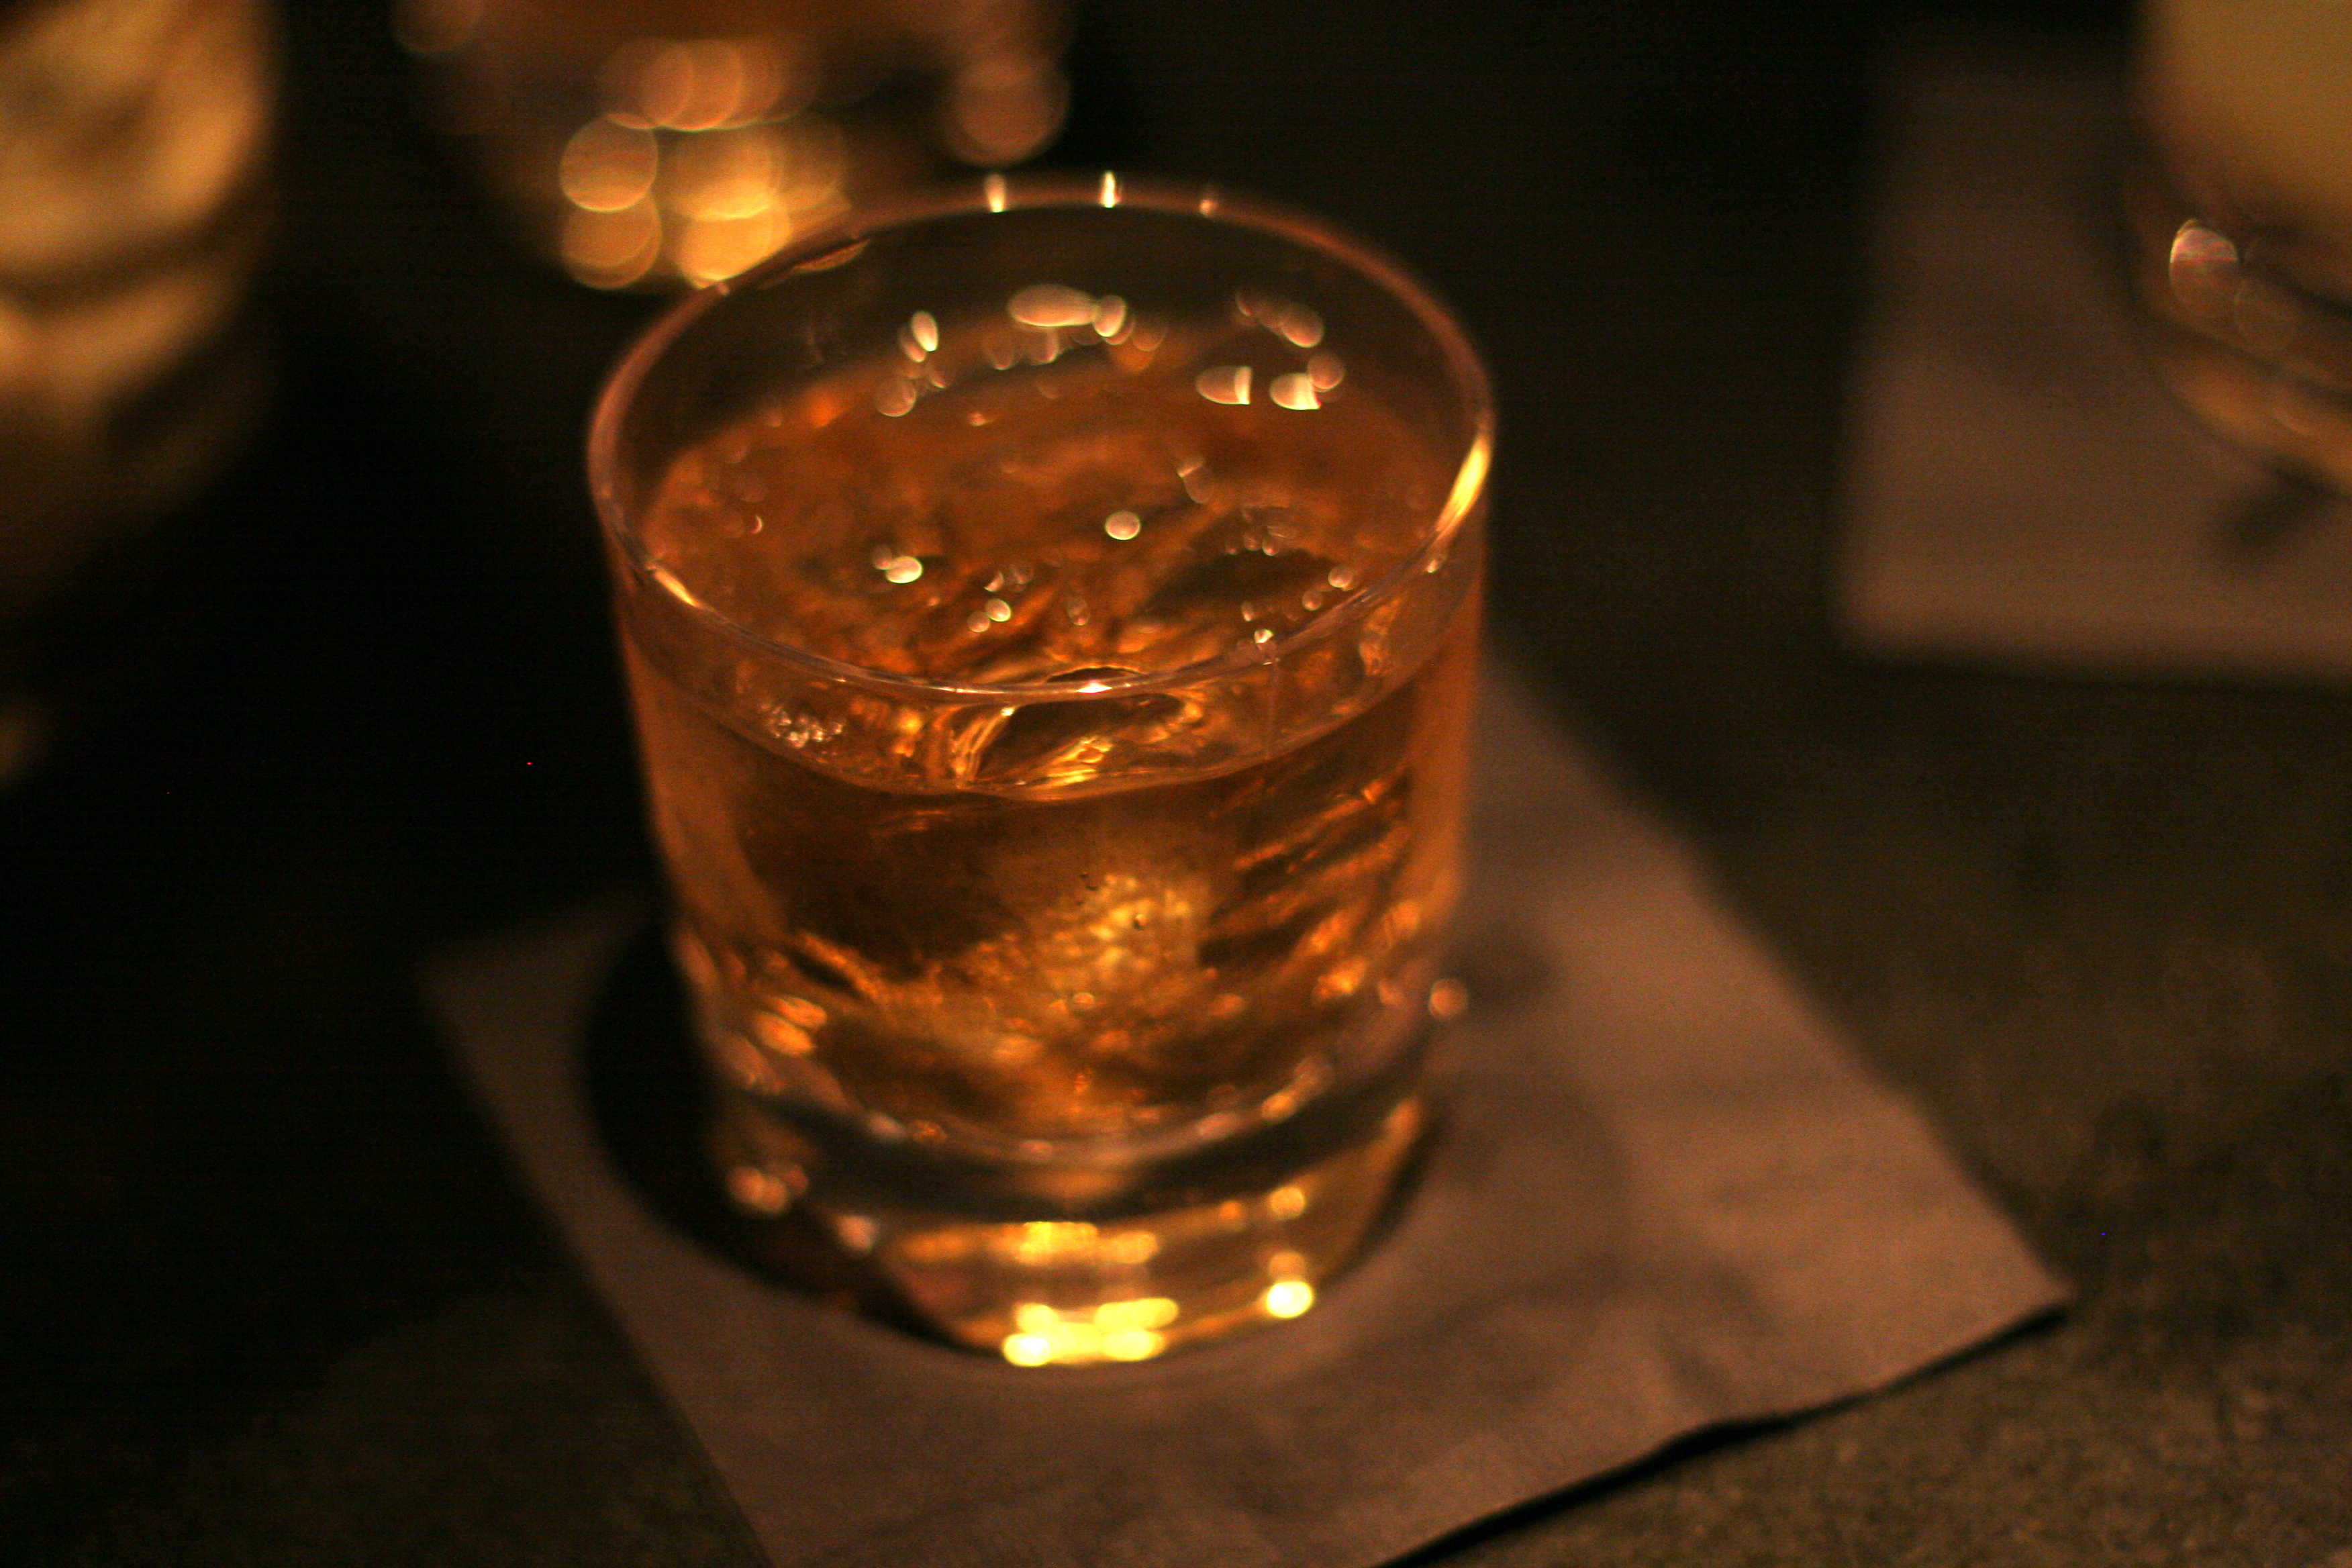 You Can Now Buy Special Water Just for Mixing with Whiskey